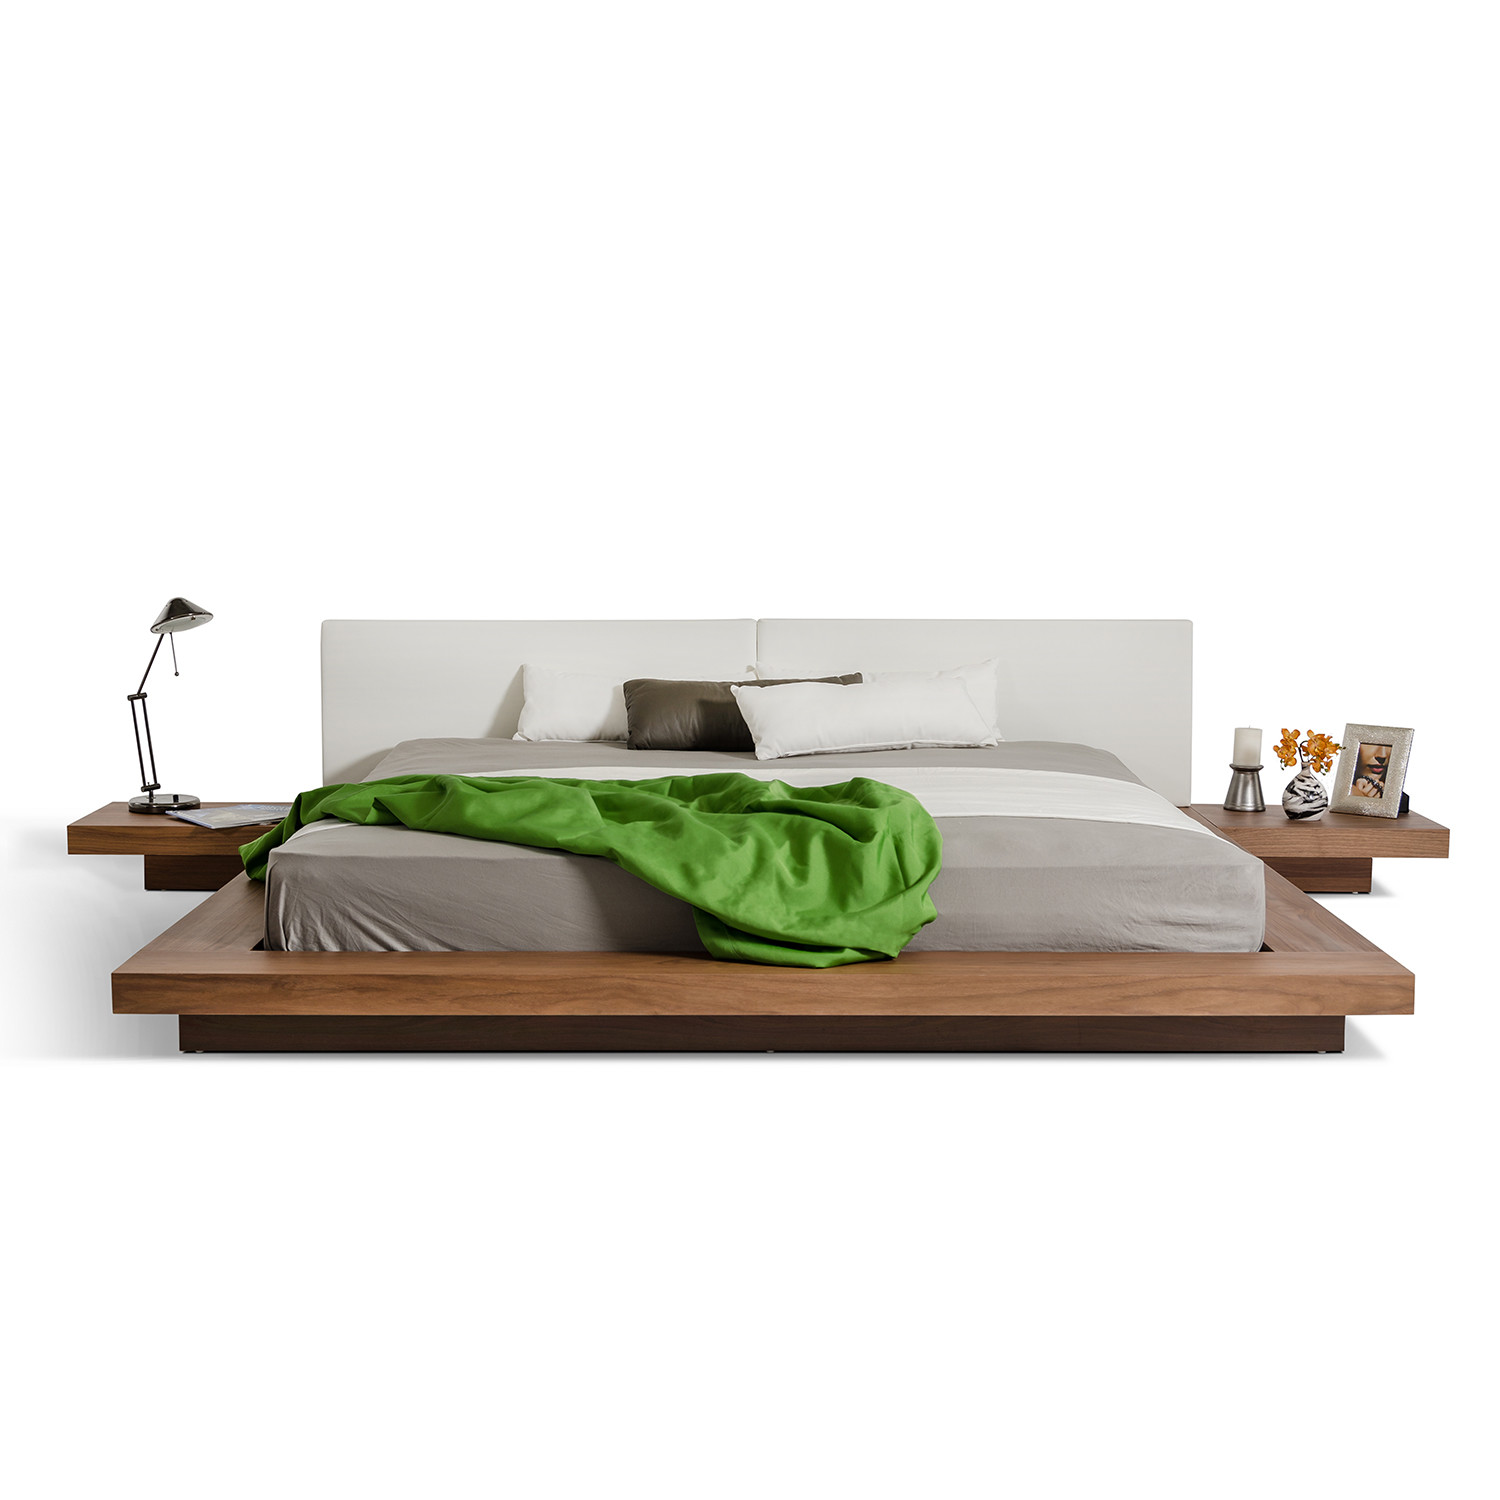 Modrest opal modern low profile platform bed walnut Modern platform beds